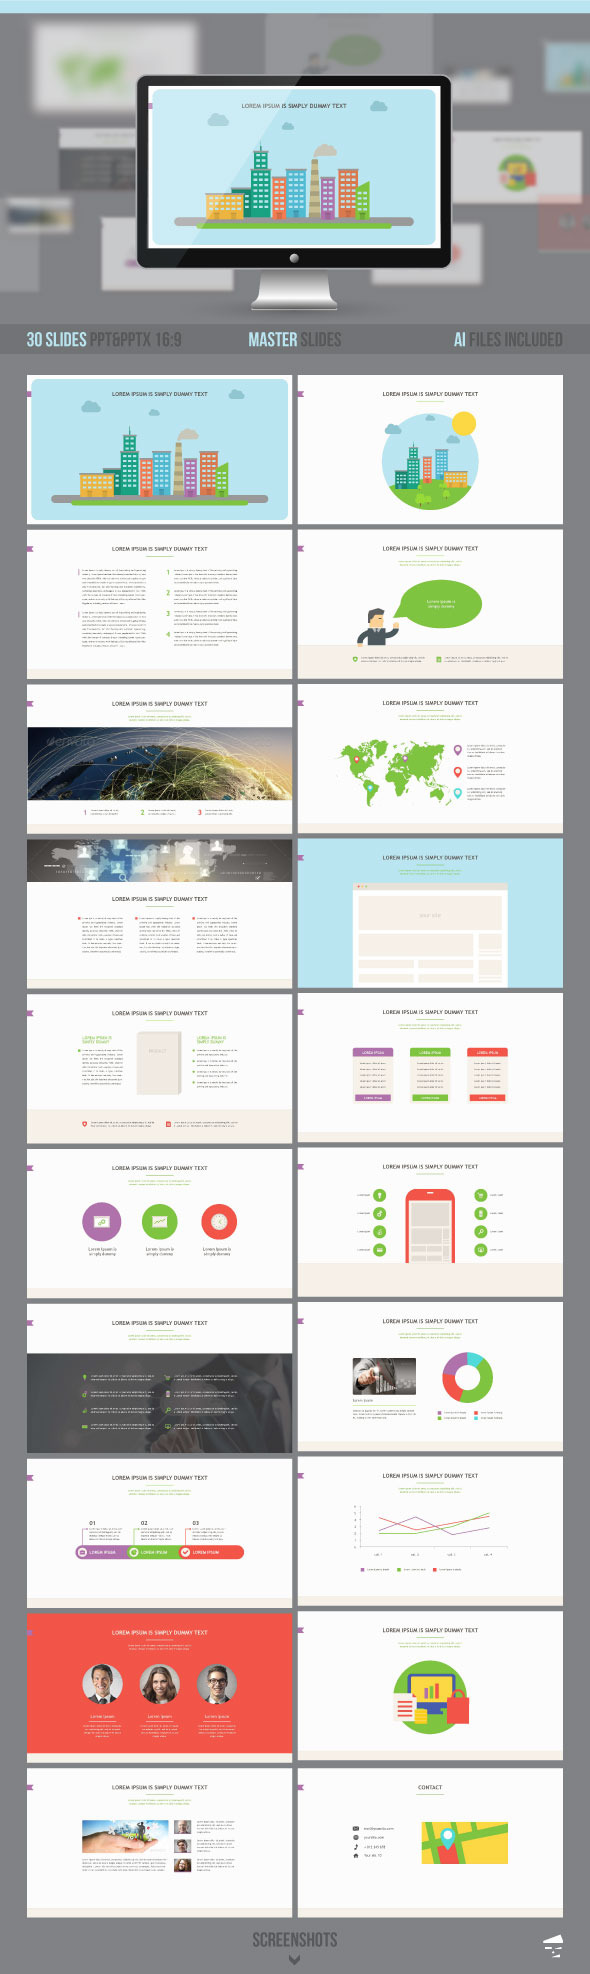 GraphicRiver Business presentation template 10519638